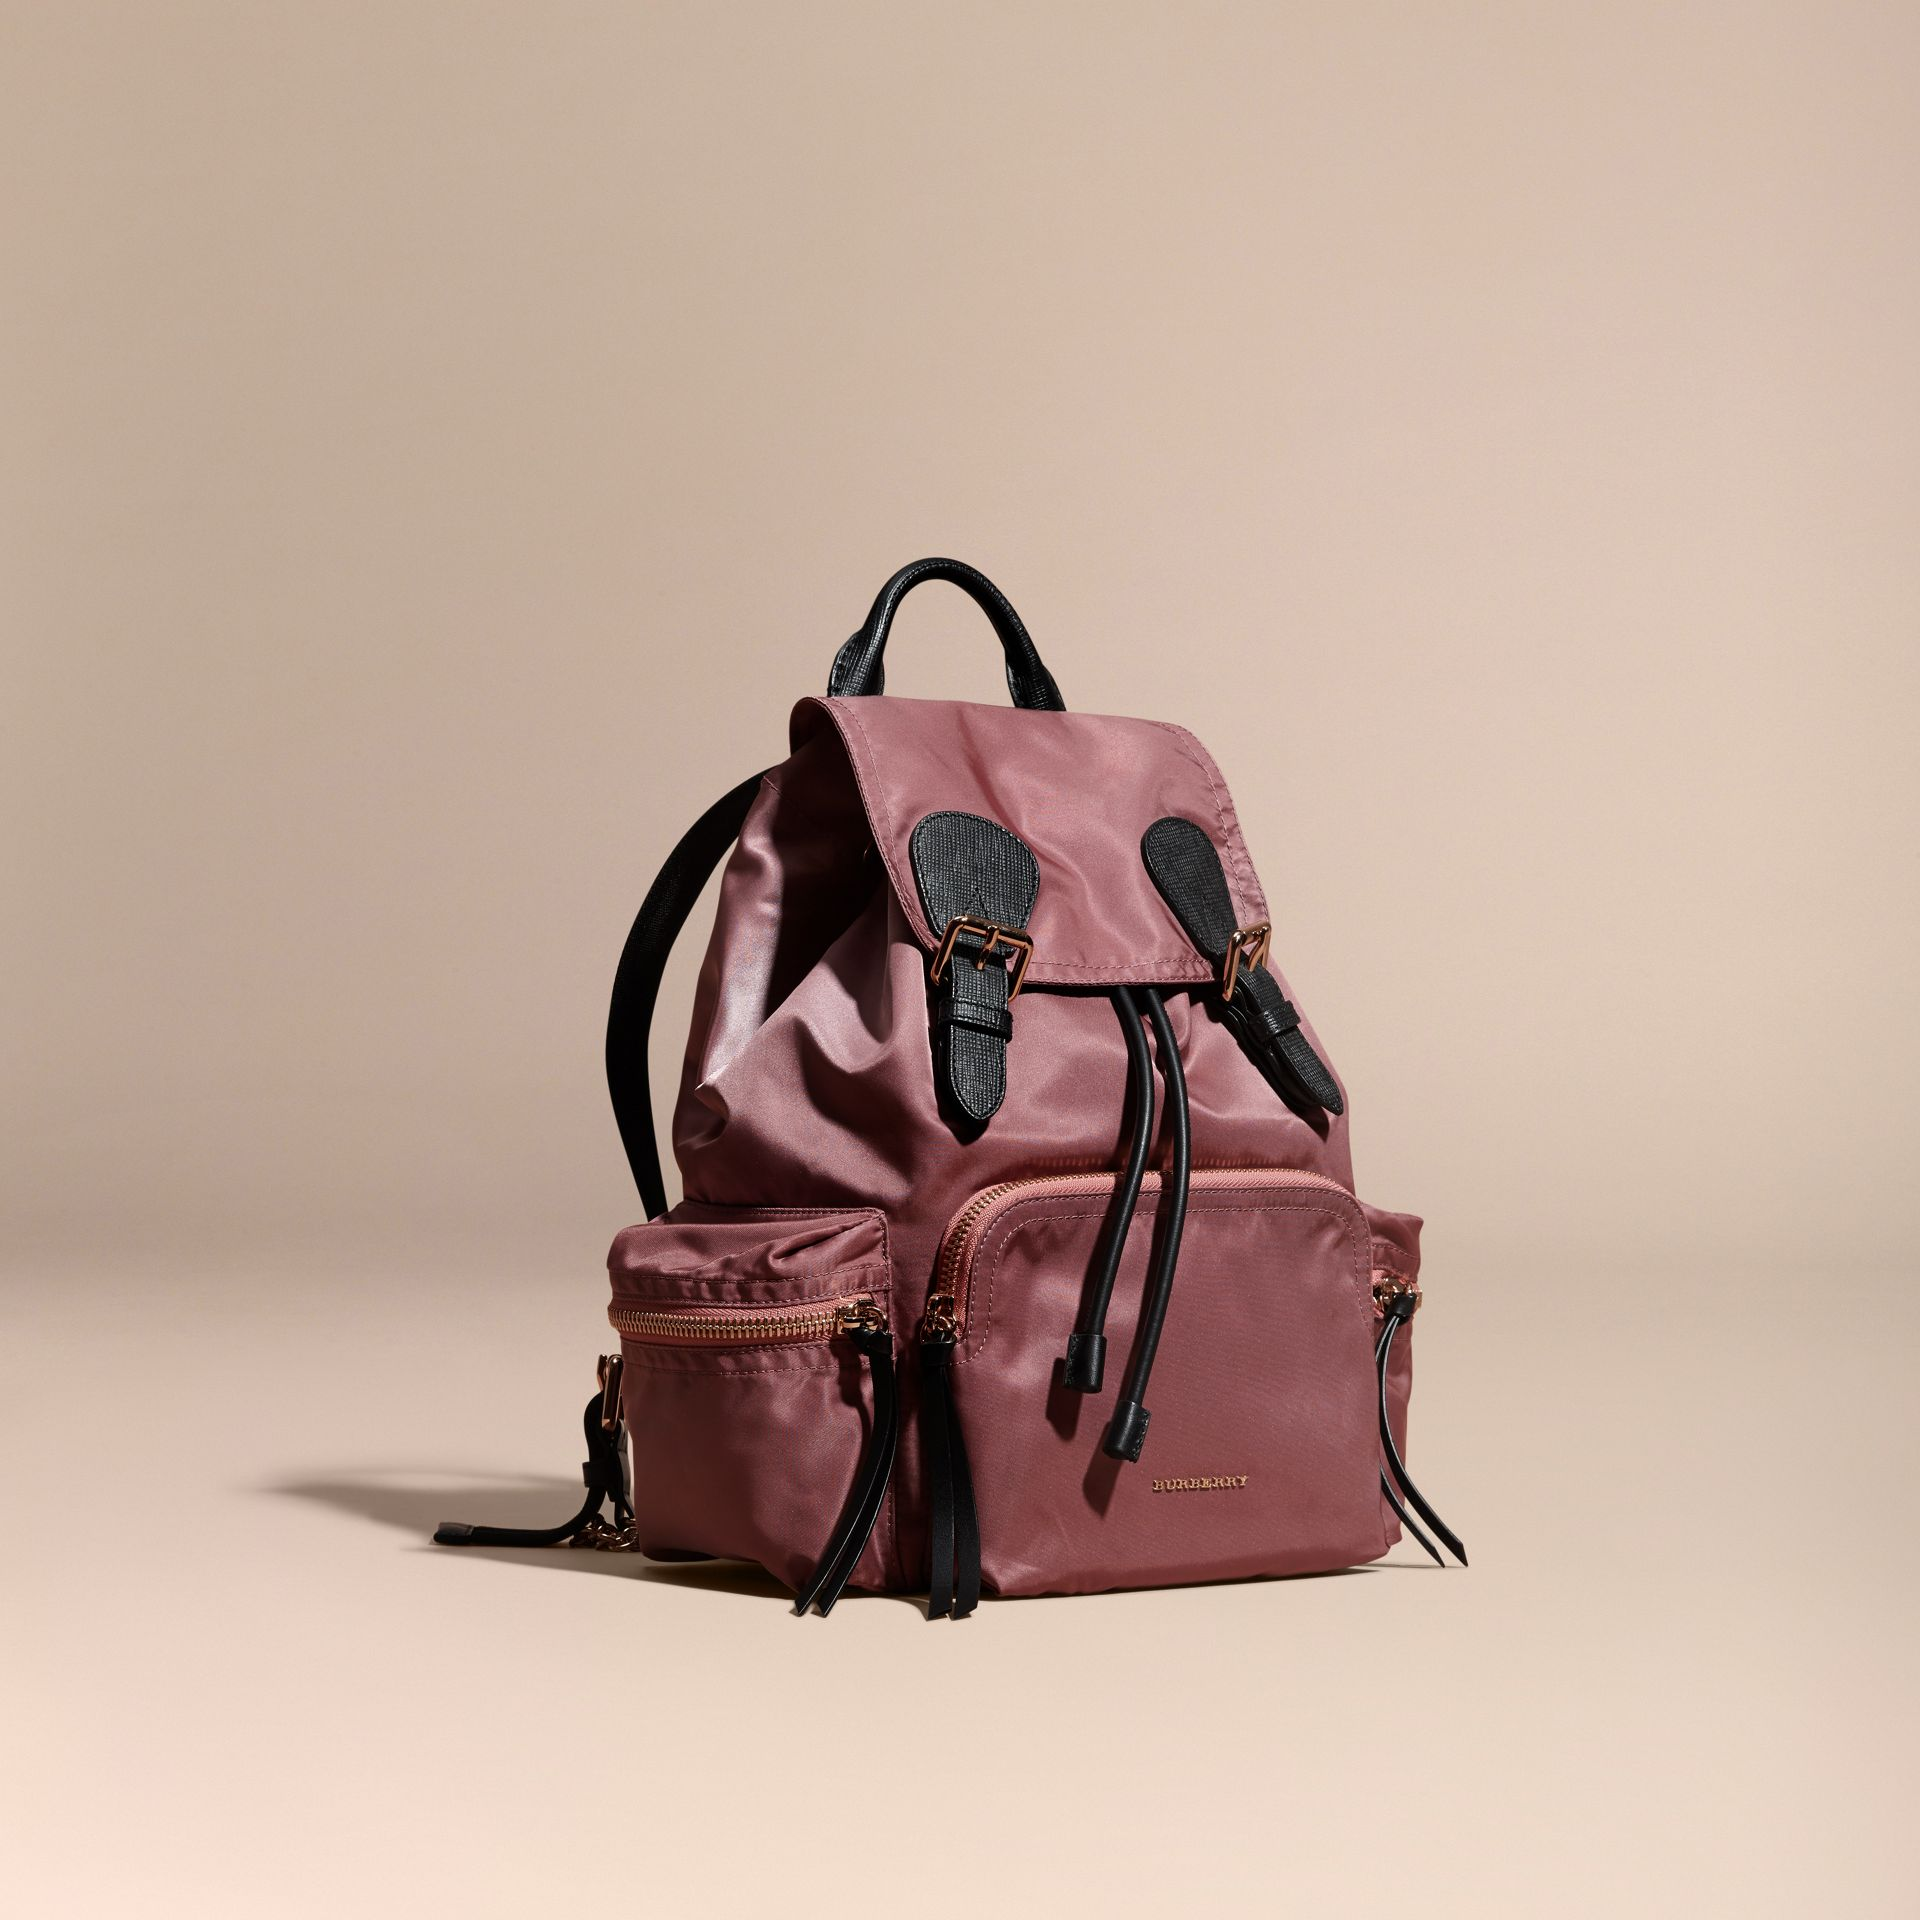 Rose mauve Sac The Rucksack medium en nylon technique et cuir Rose Mauve - photo de la galerie 1